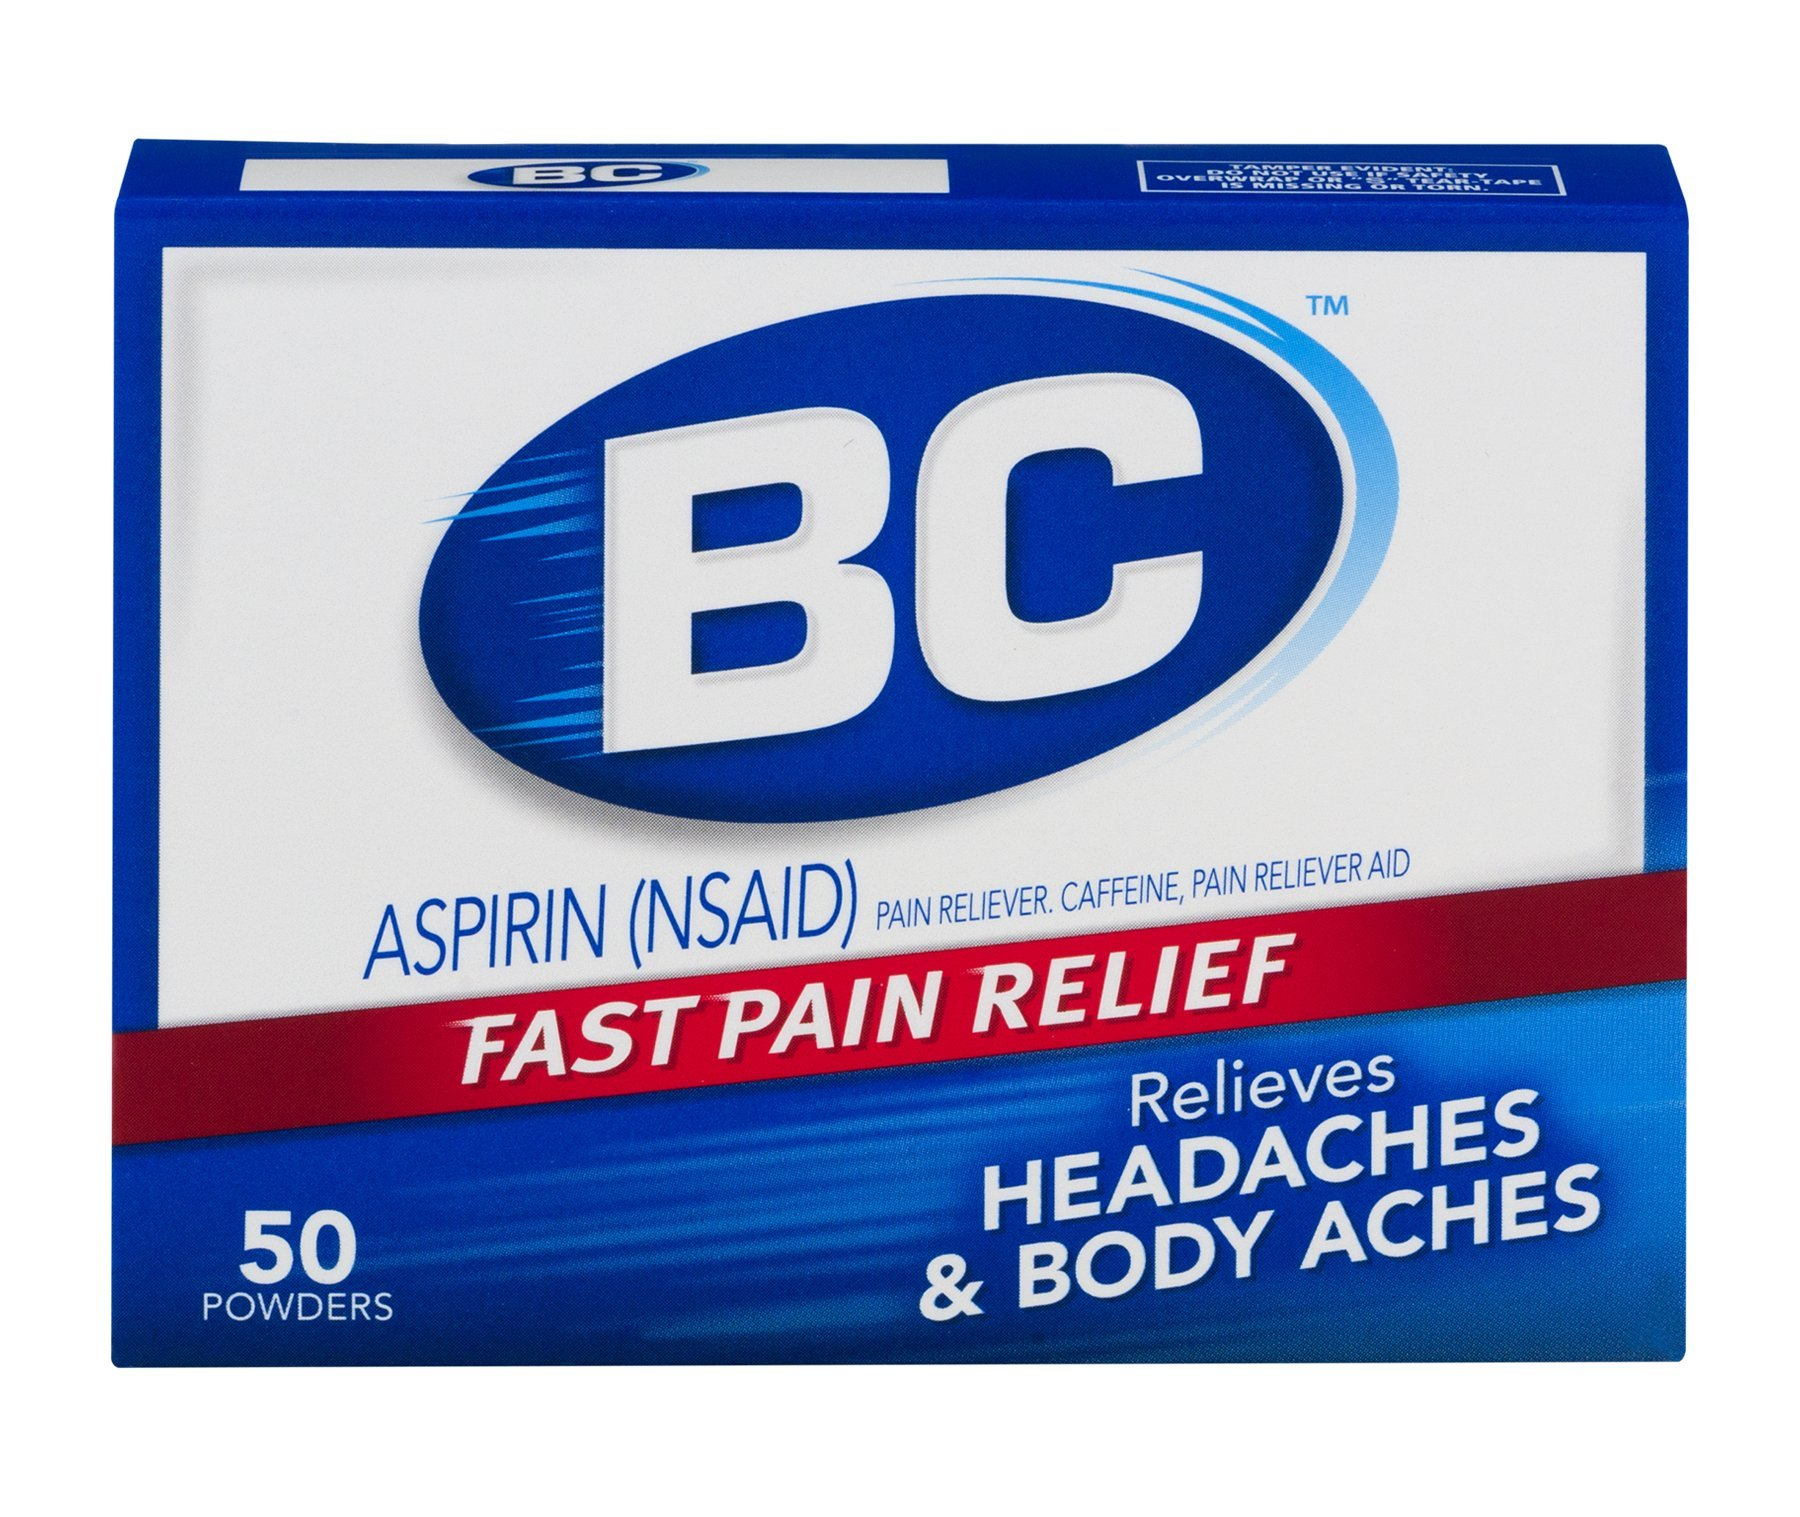 BC Aspirin Fast Pain Relief Powder | Quickly Relieves Pain Due to Headaches, Body Aches, and Fever | Contains Caffeine | 50 Powders | Pack of 6